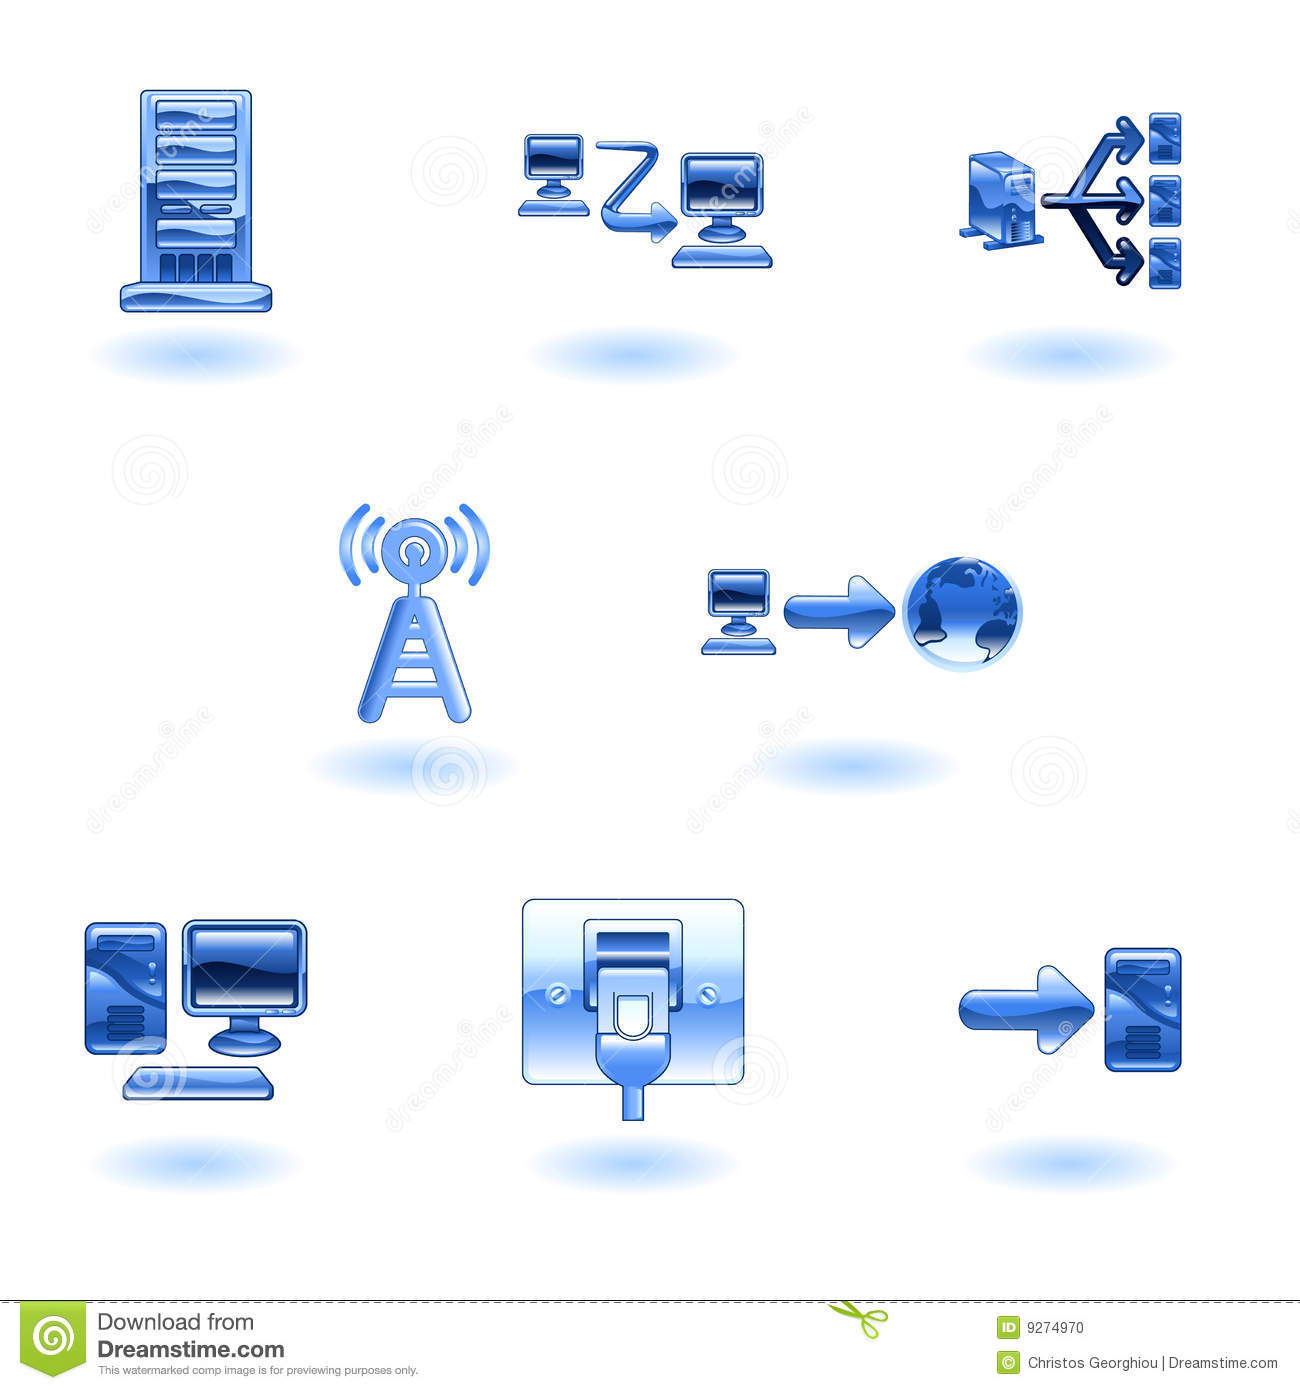 computer network diagram symbols three way switch with dimmer wiring 16 3d icon images port